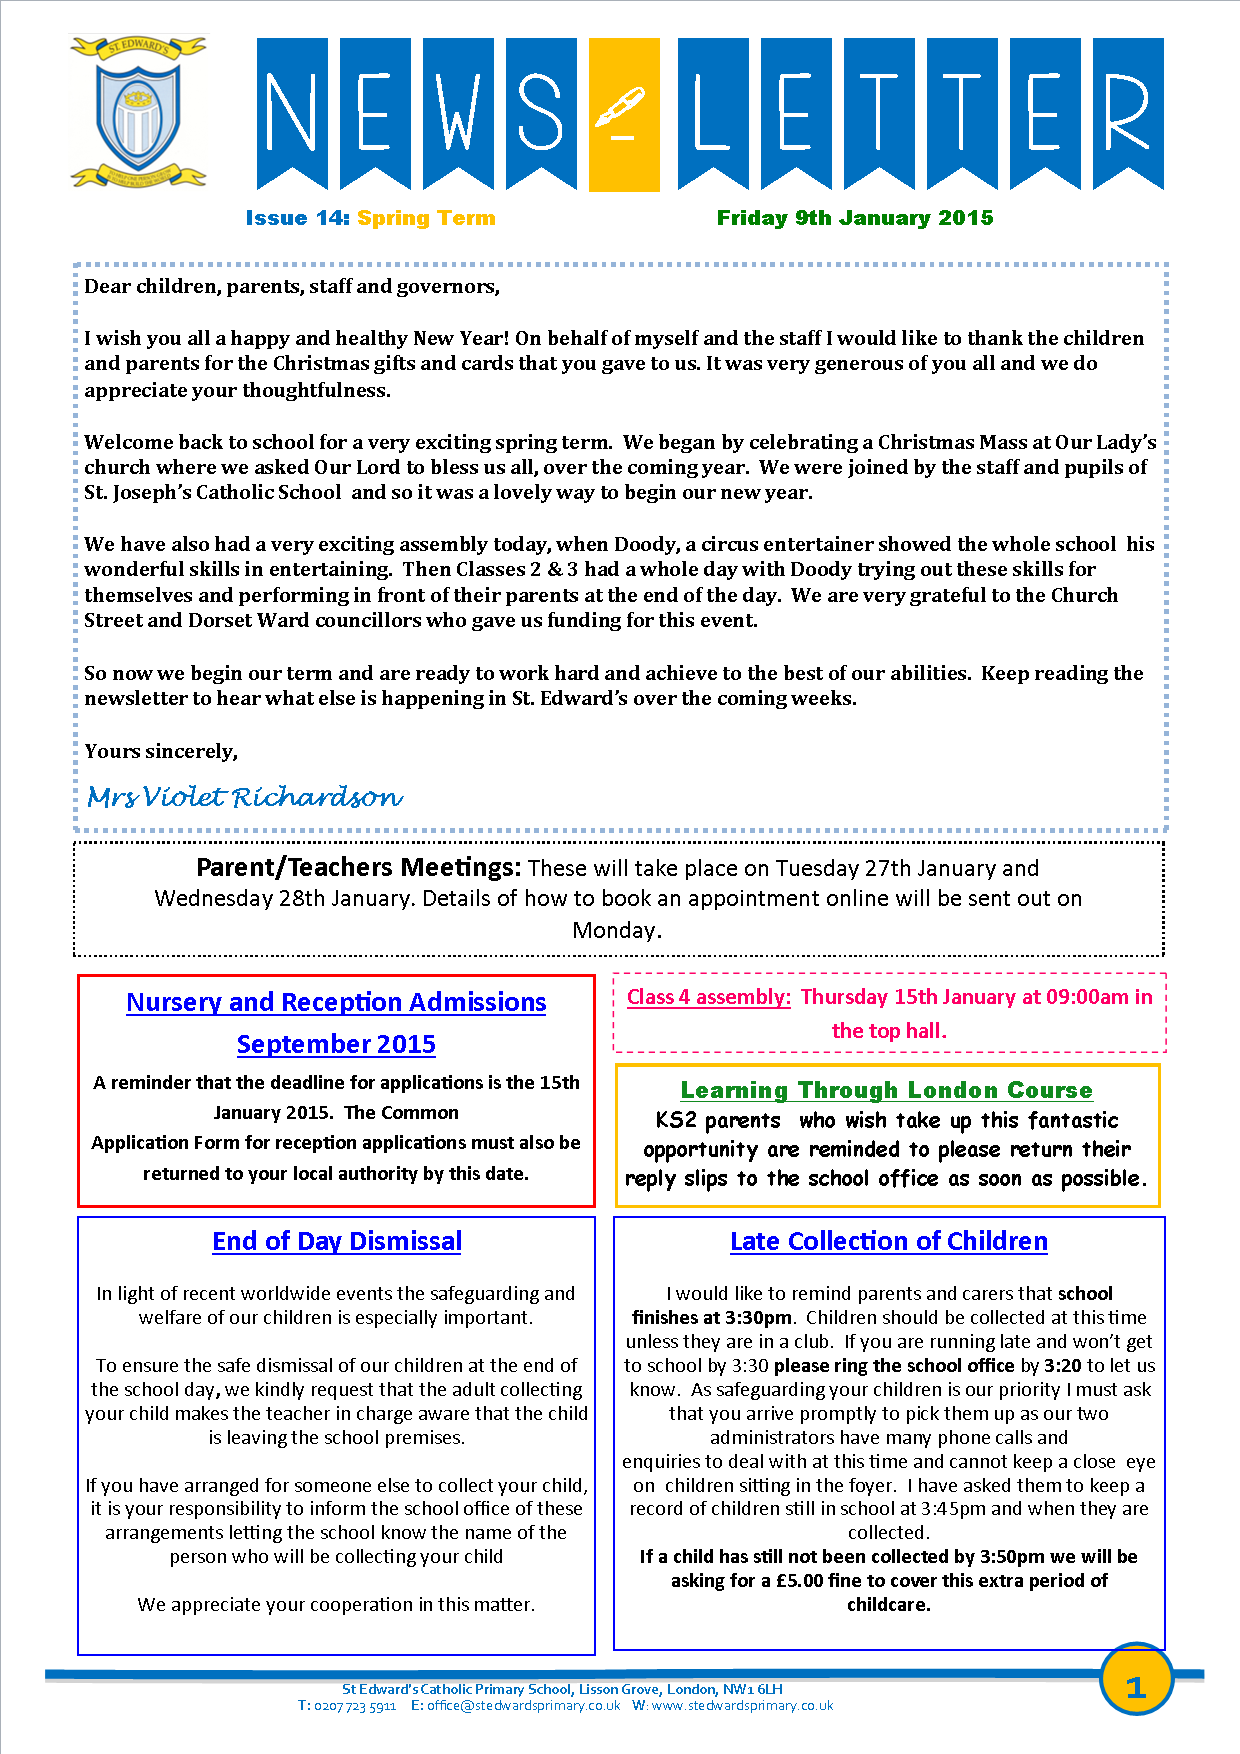 1St Edward's Newsletter Issue 13 12th December 2014.png